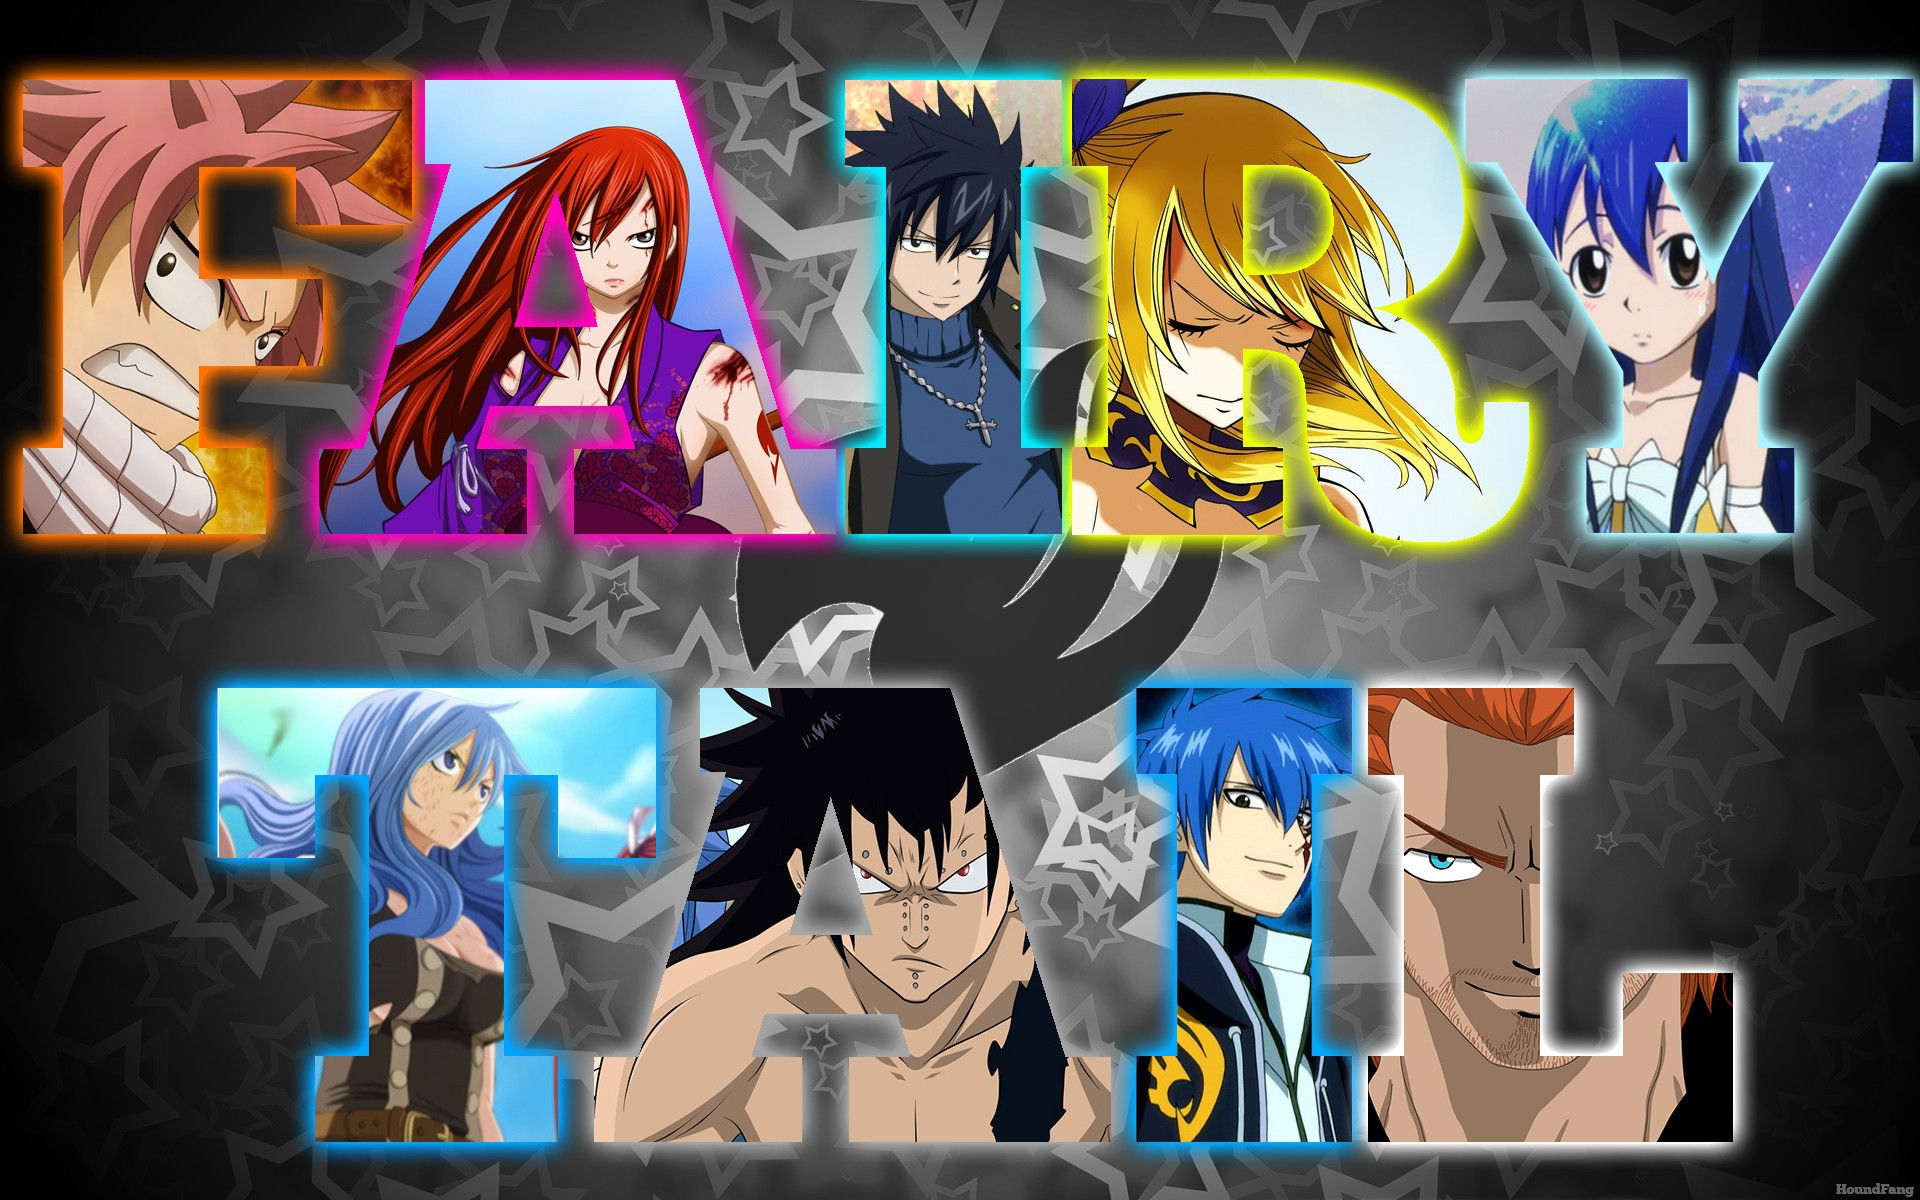 1592039 Fairy Tail wallpaper HD free wallpapers backgrounds images ...